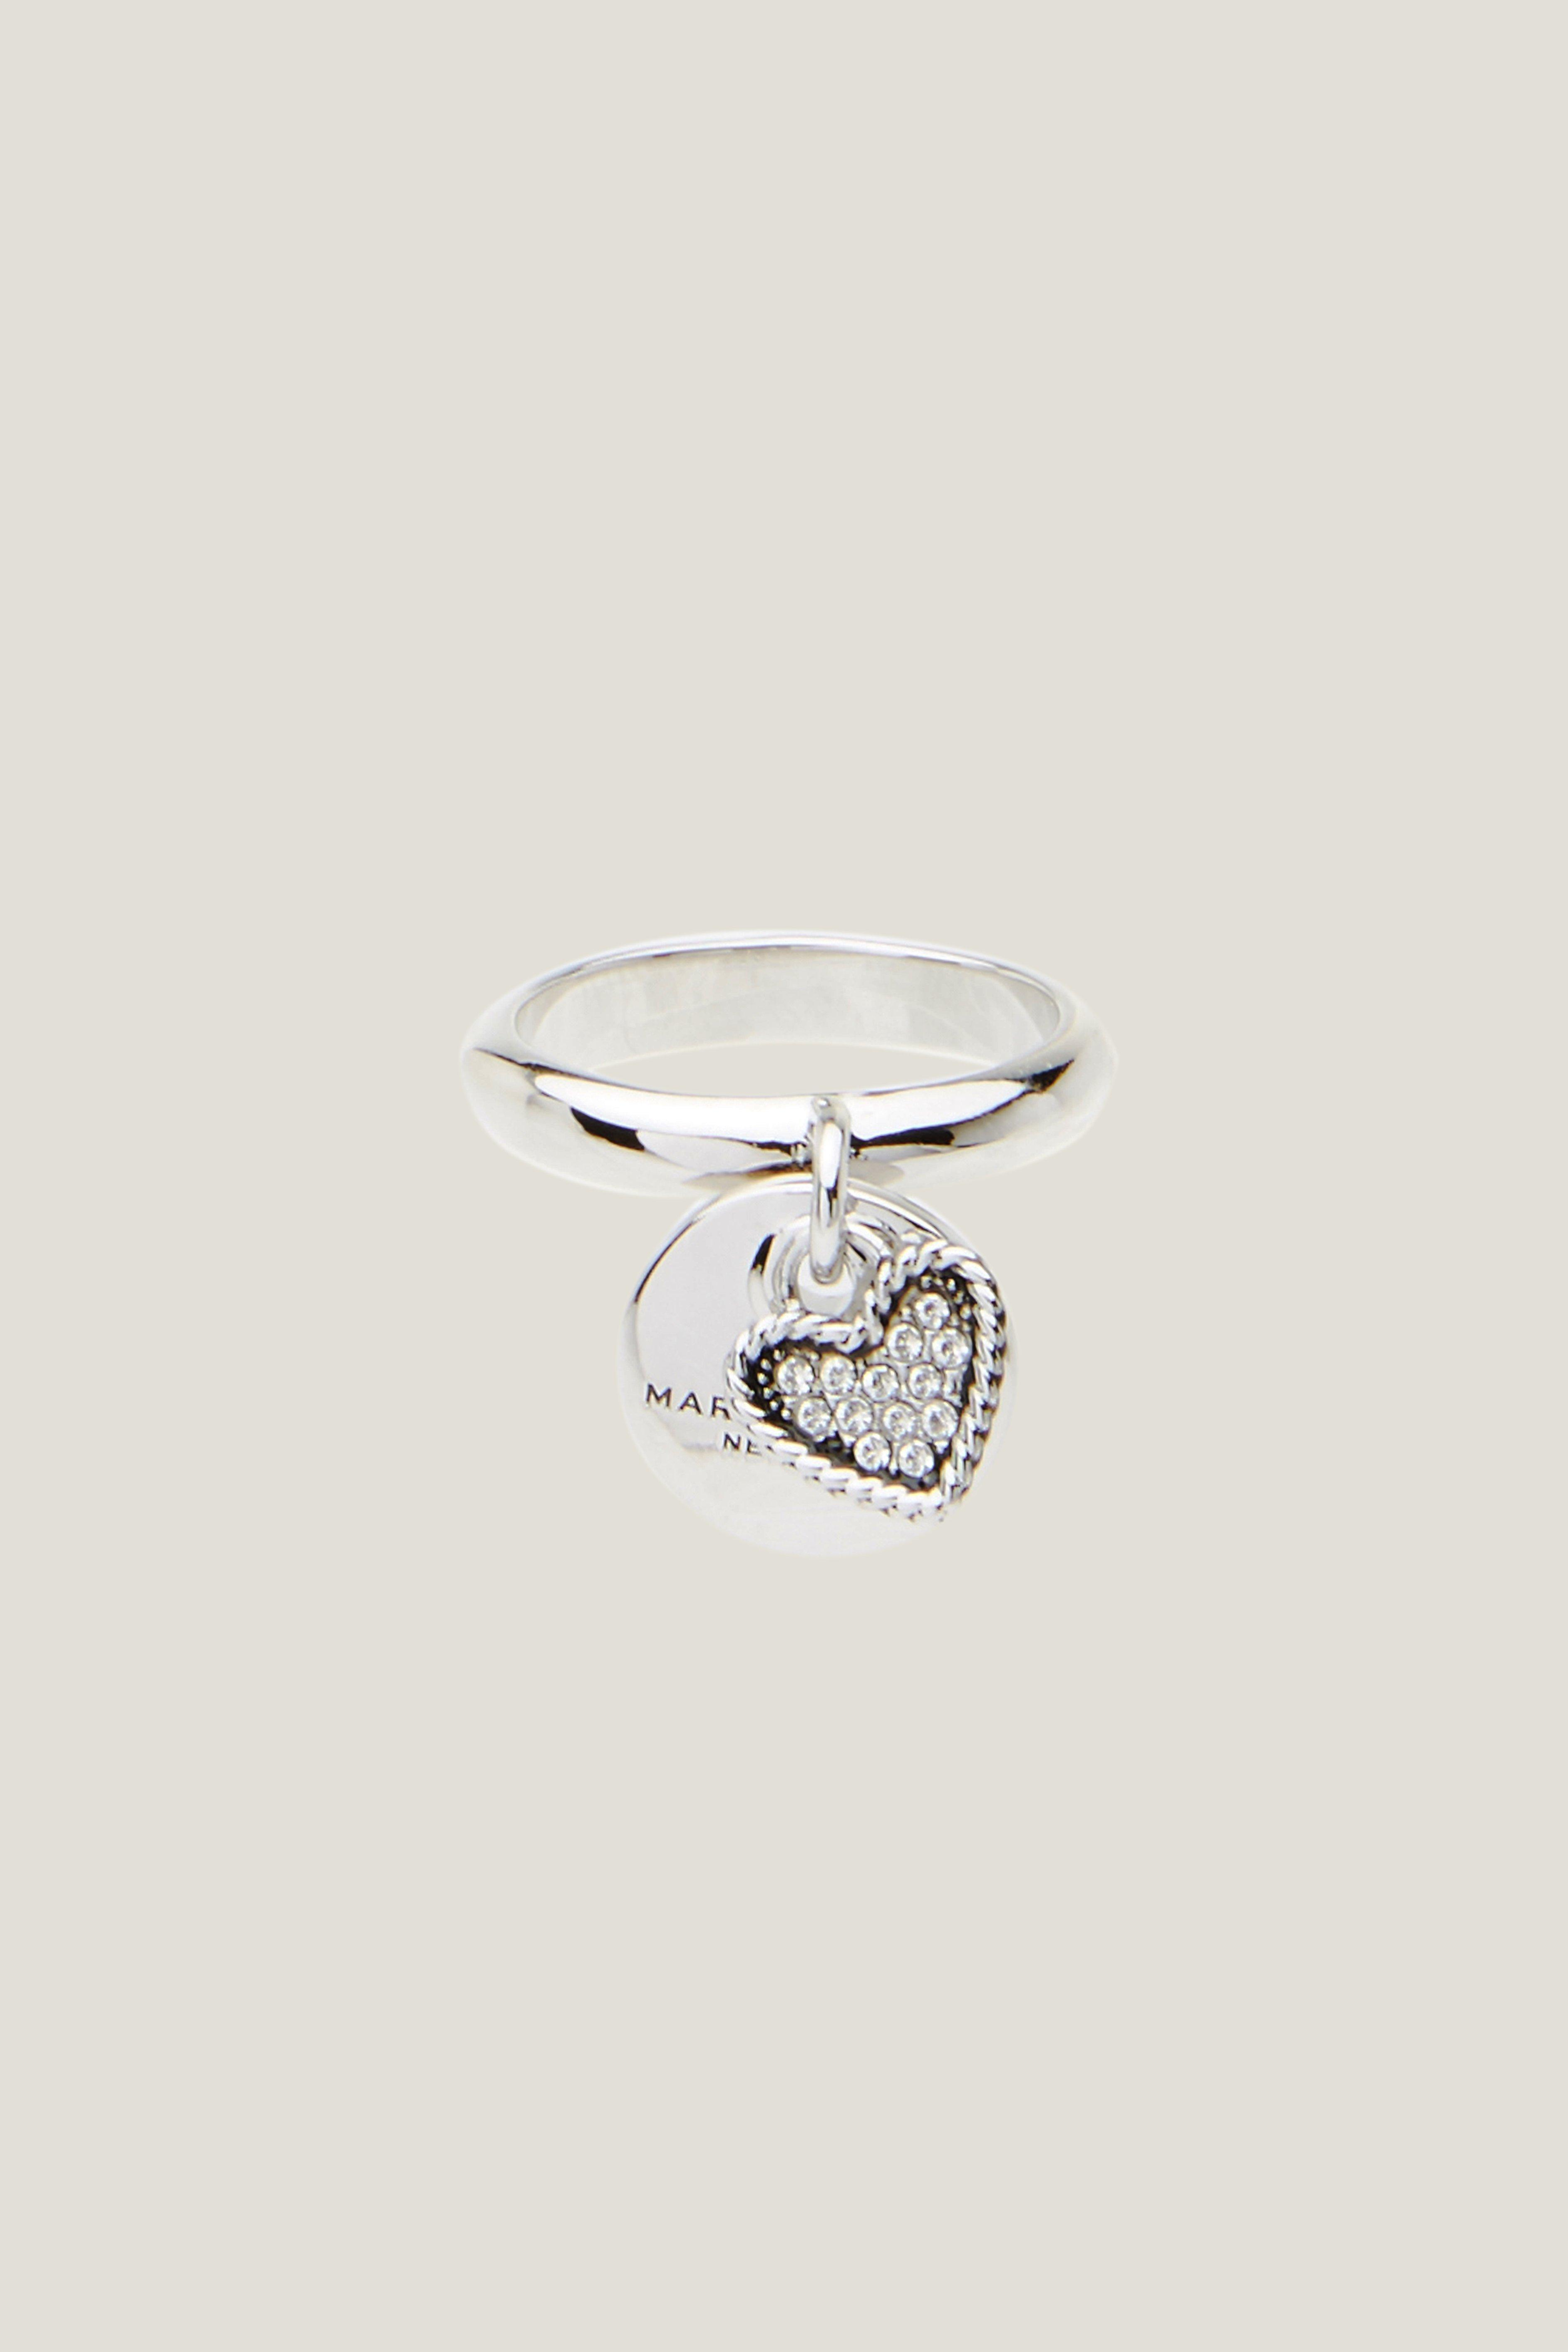 Marc Jacobs Mj Coin Charm Ring In Crystal/Silver